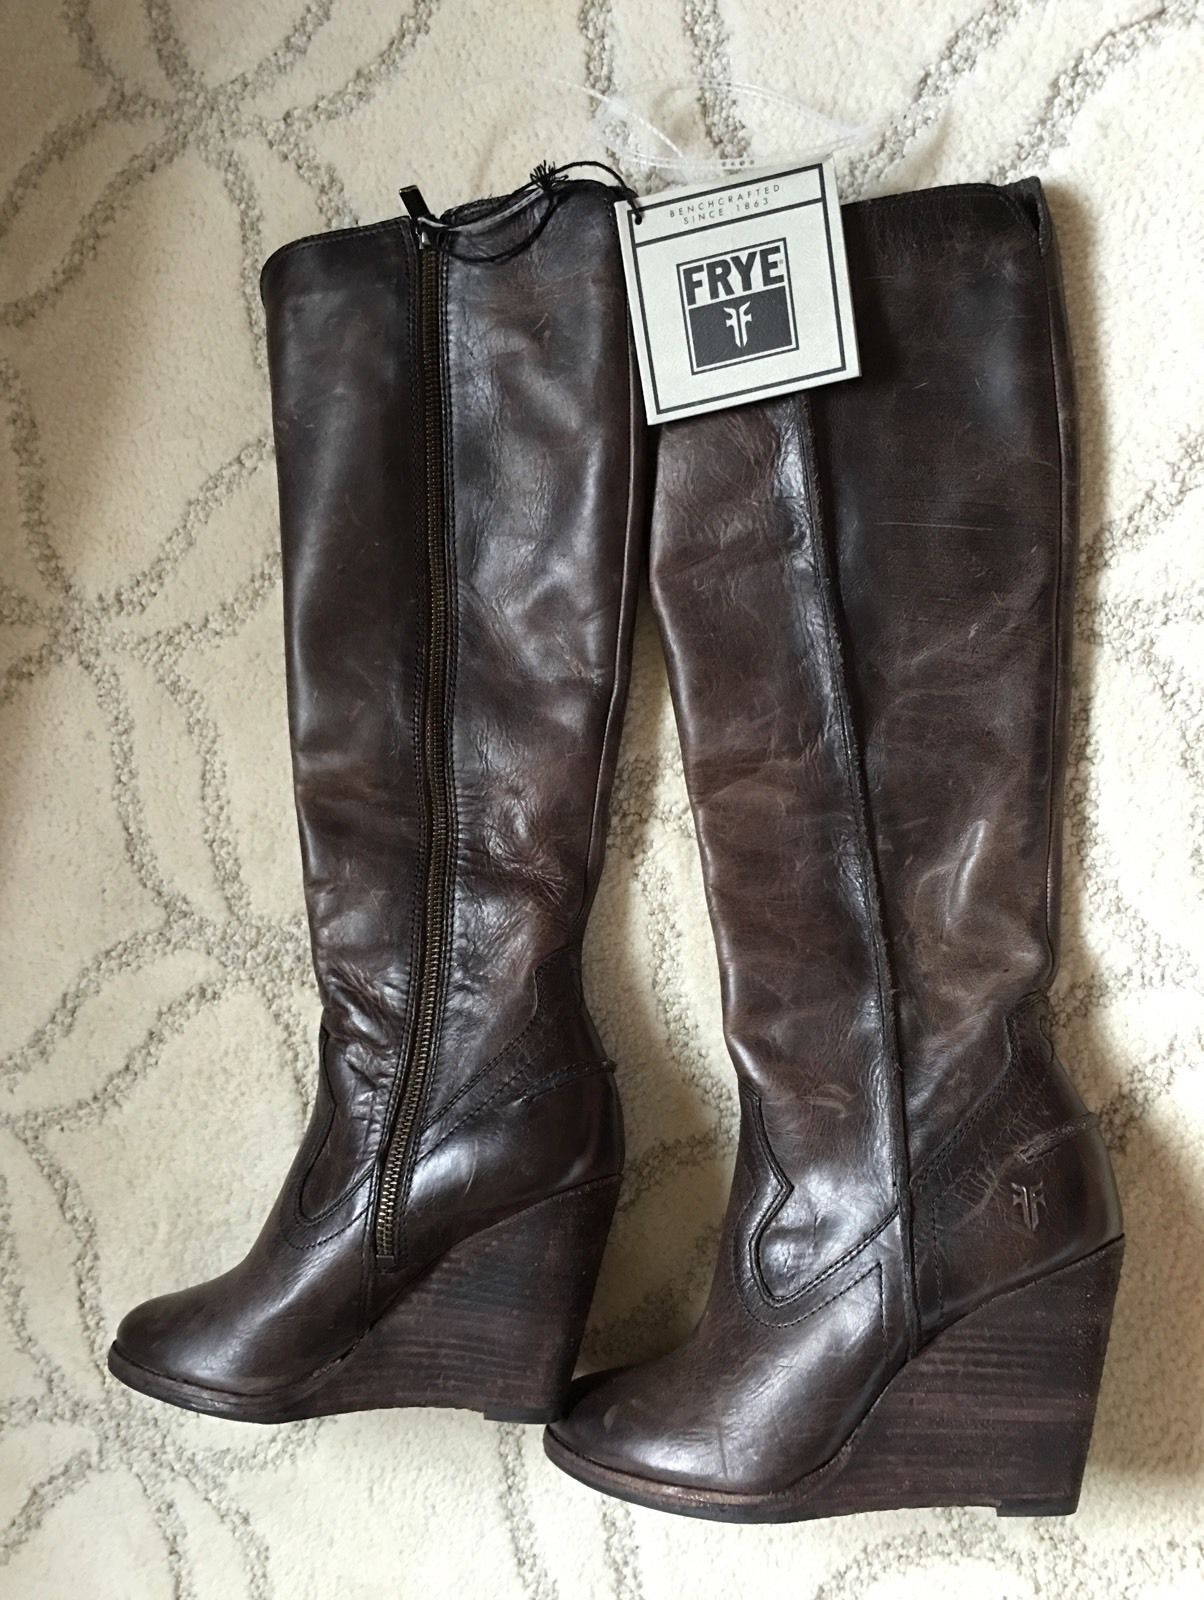 c3a3e5d2247 Frye Cece Seam Knee High Wedge Boots Womens and 50 similar items. S l1600